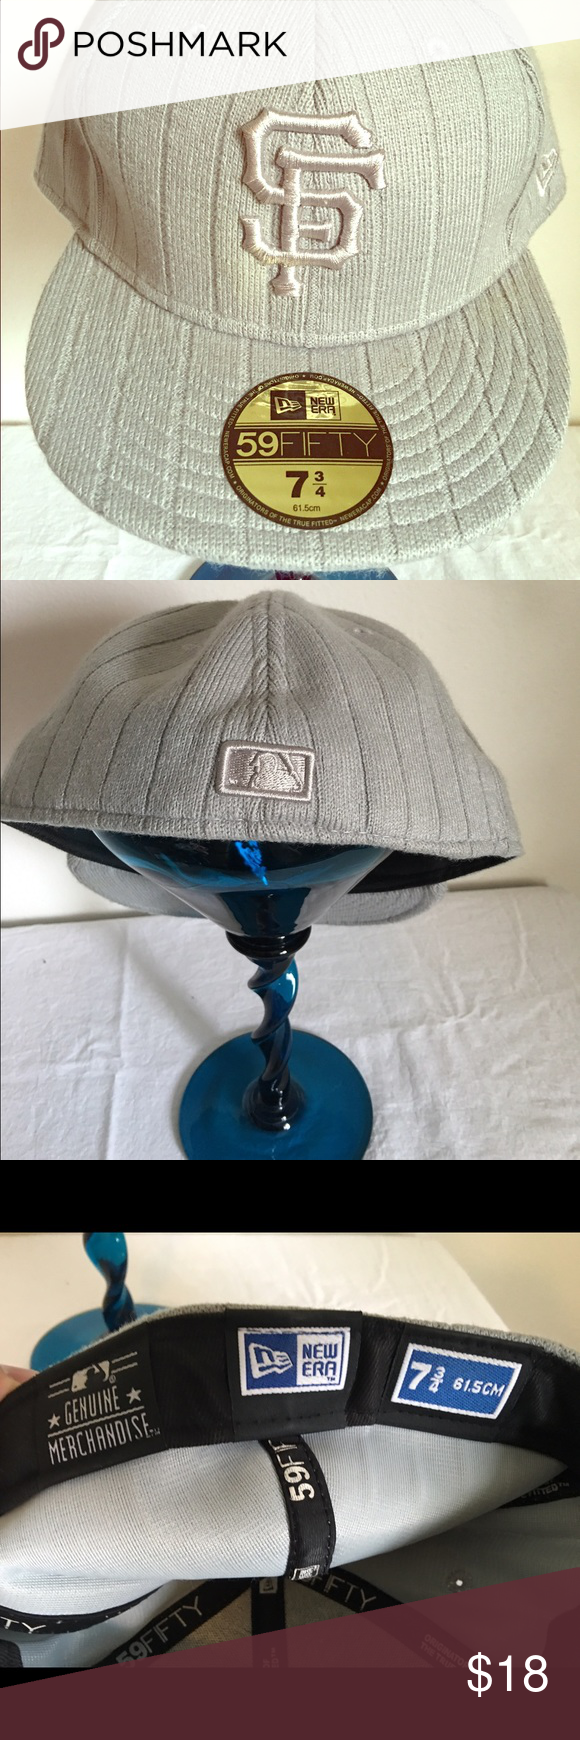 New Era S.F Hat!🤘🏻 Grey Quilted New Era Hat! Excellent condition! Price Firm unless bundled! New Era Accessories Hats